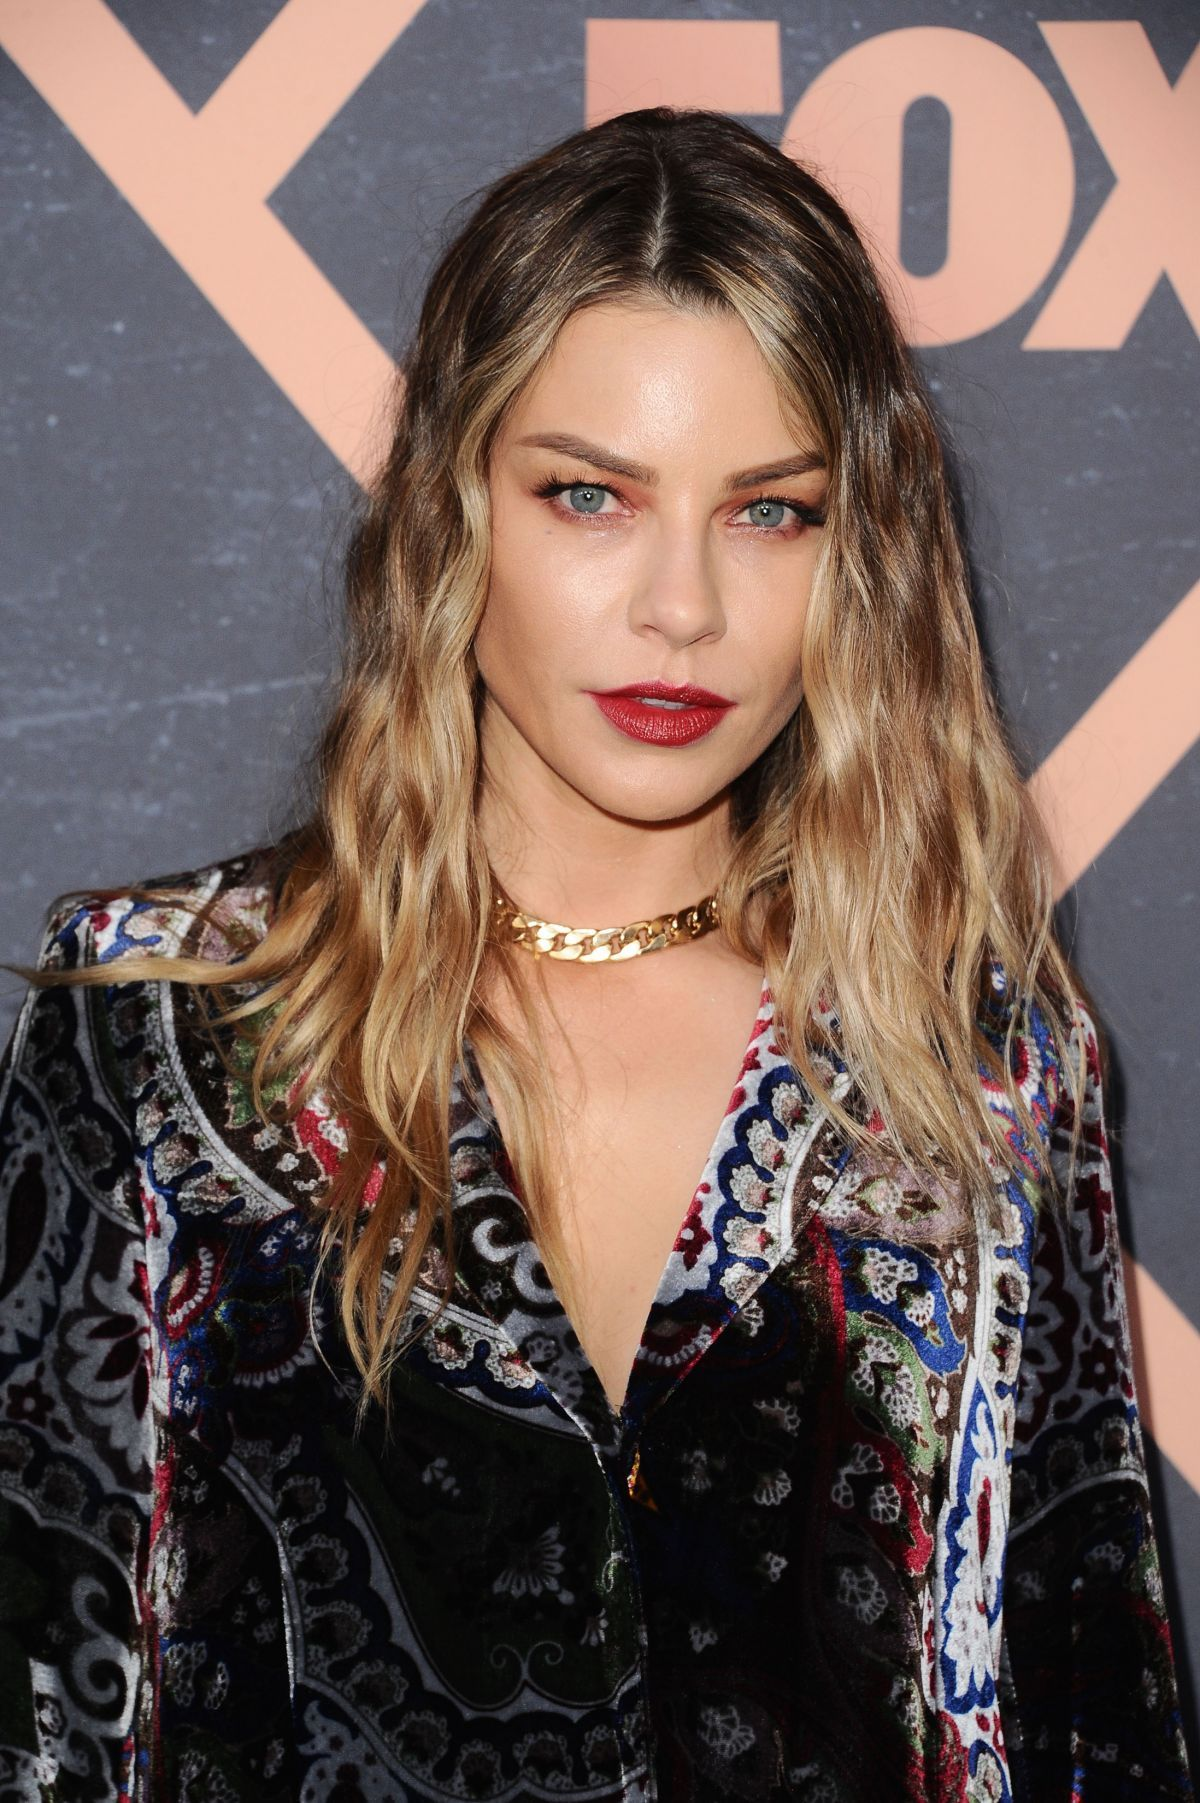 Lauren German nude photos 2019